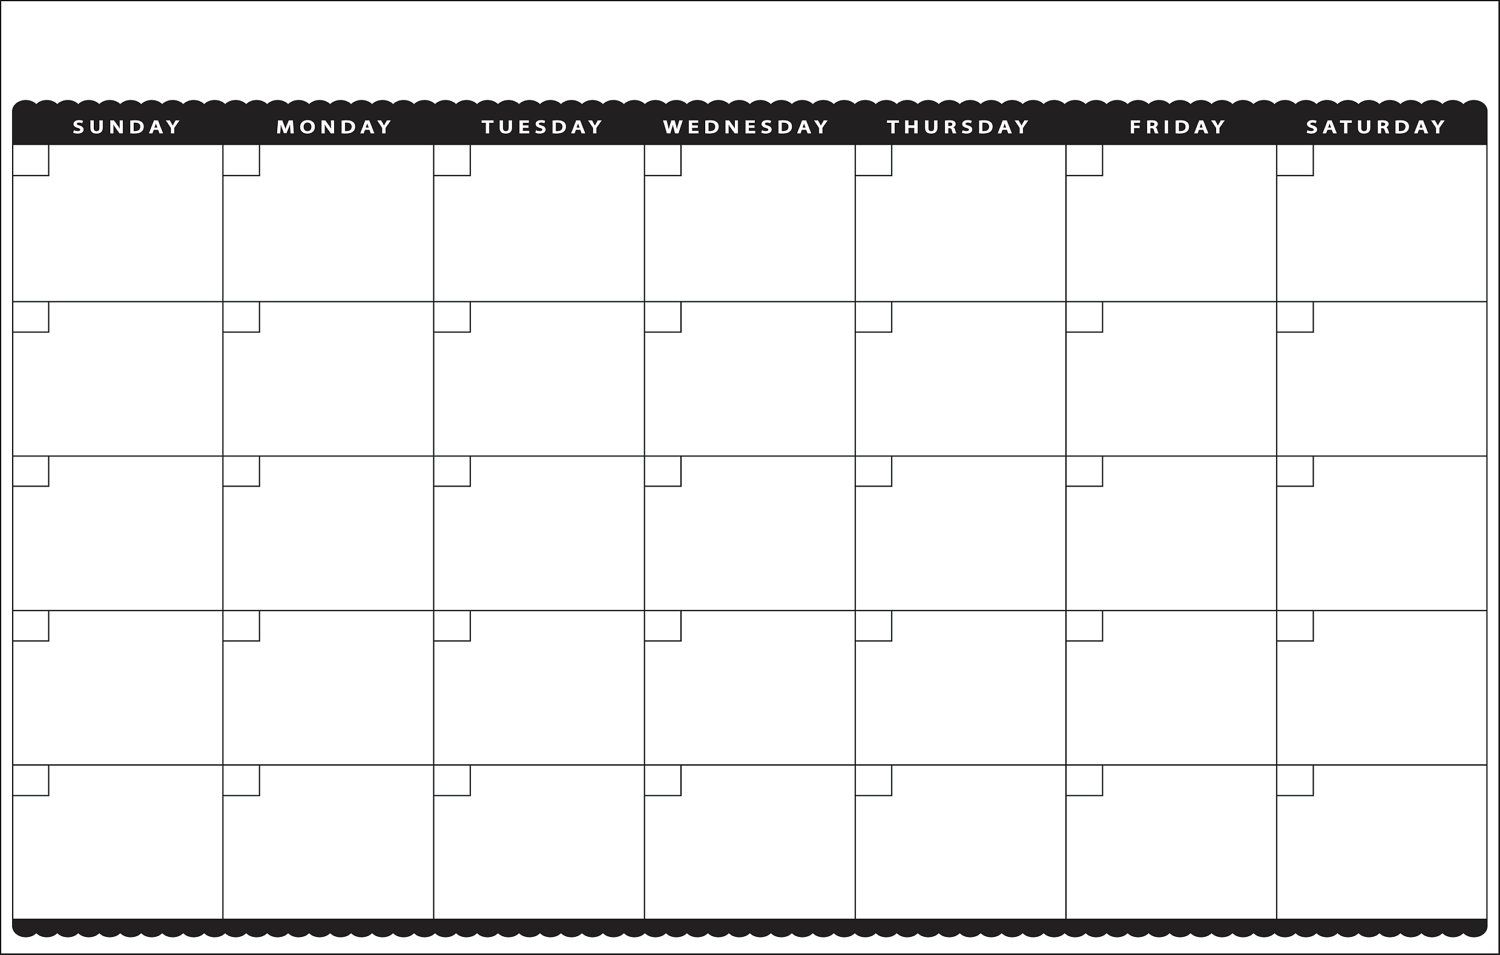 11×17 Calendar Template Word – Printable Year Calendar